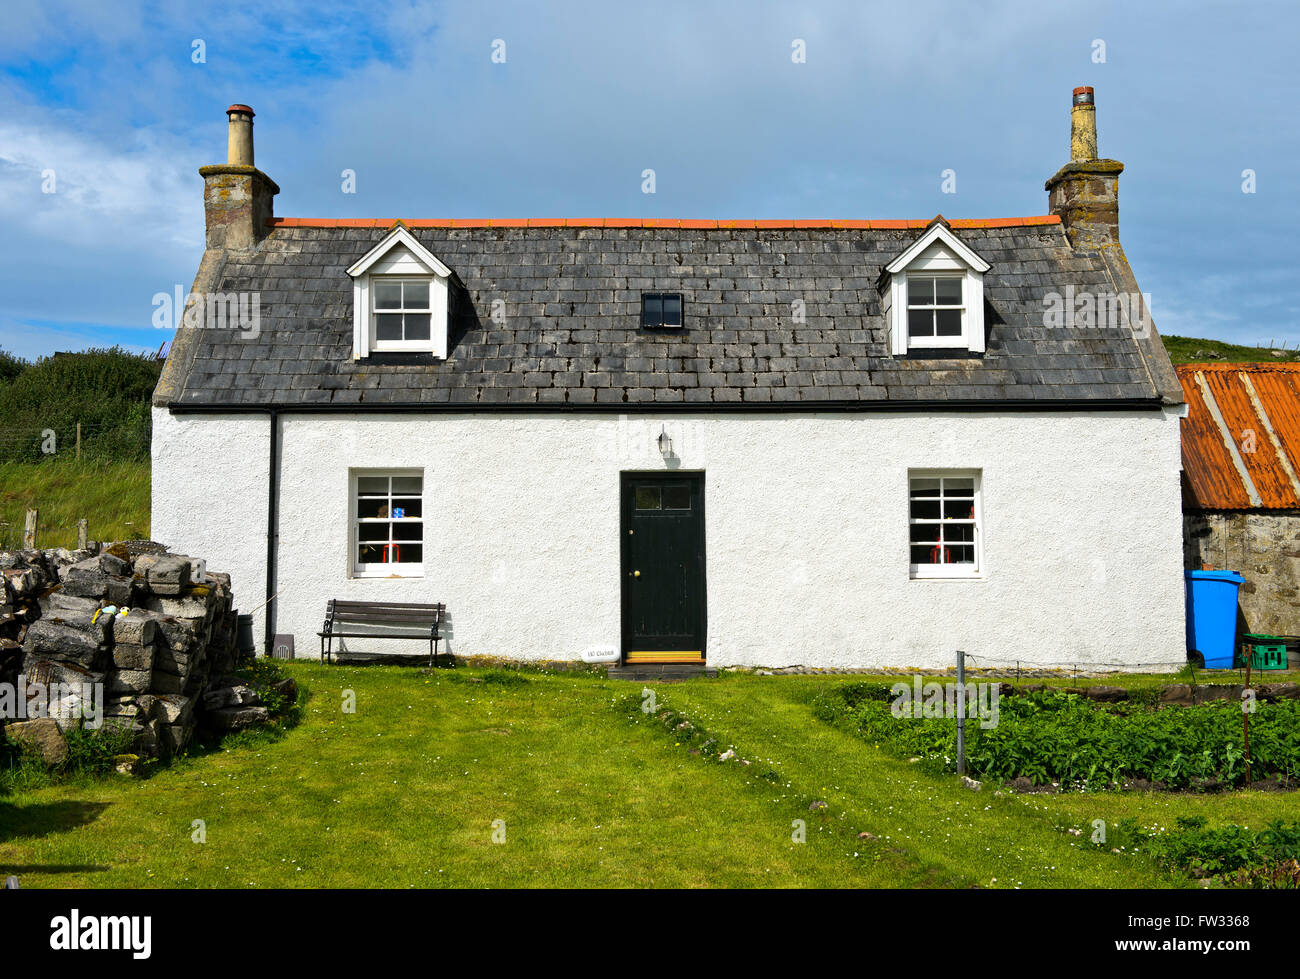 Typical small farmhouse or croft, Clachtoll, Assynt, Scotland, United Kingdom - Stock Image